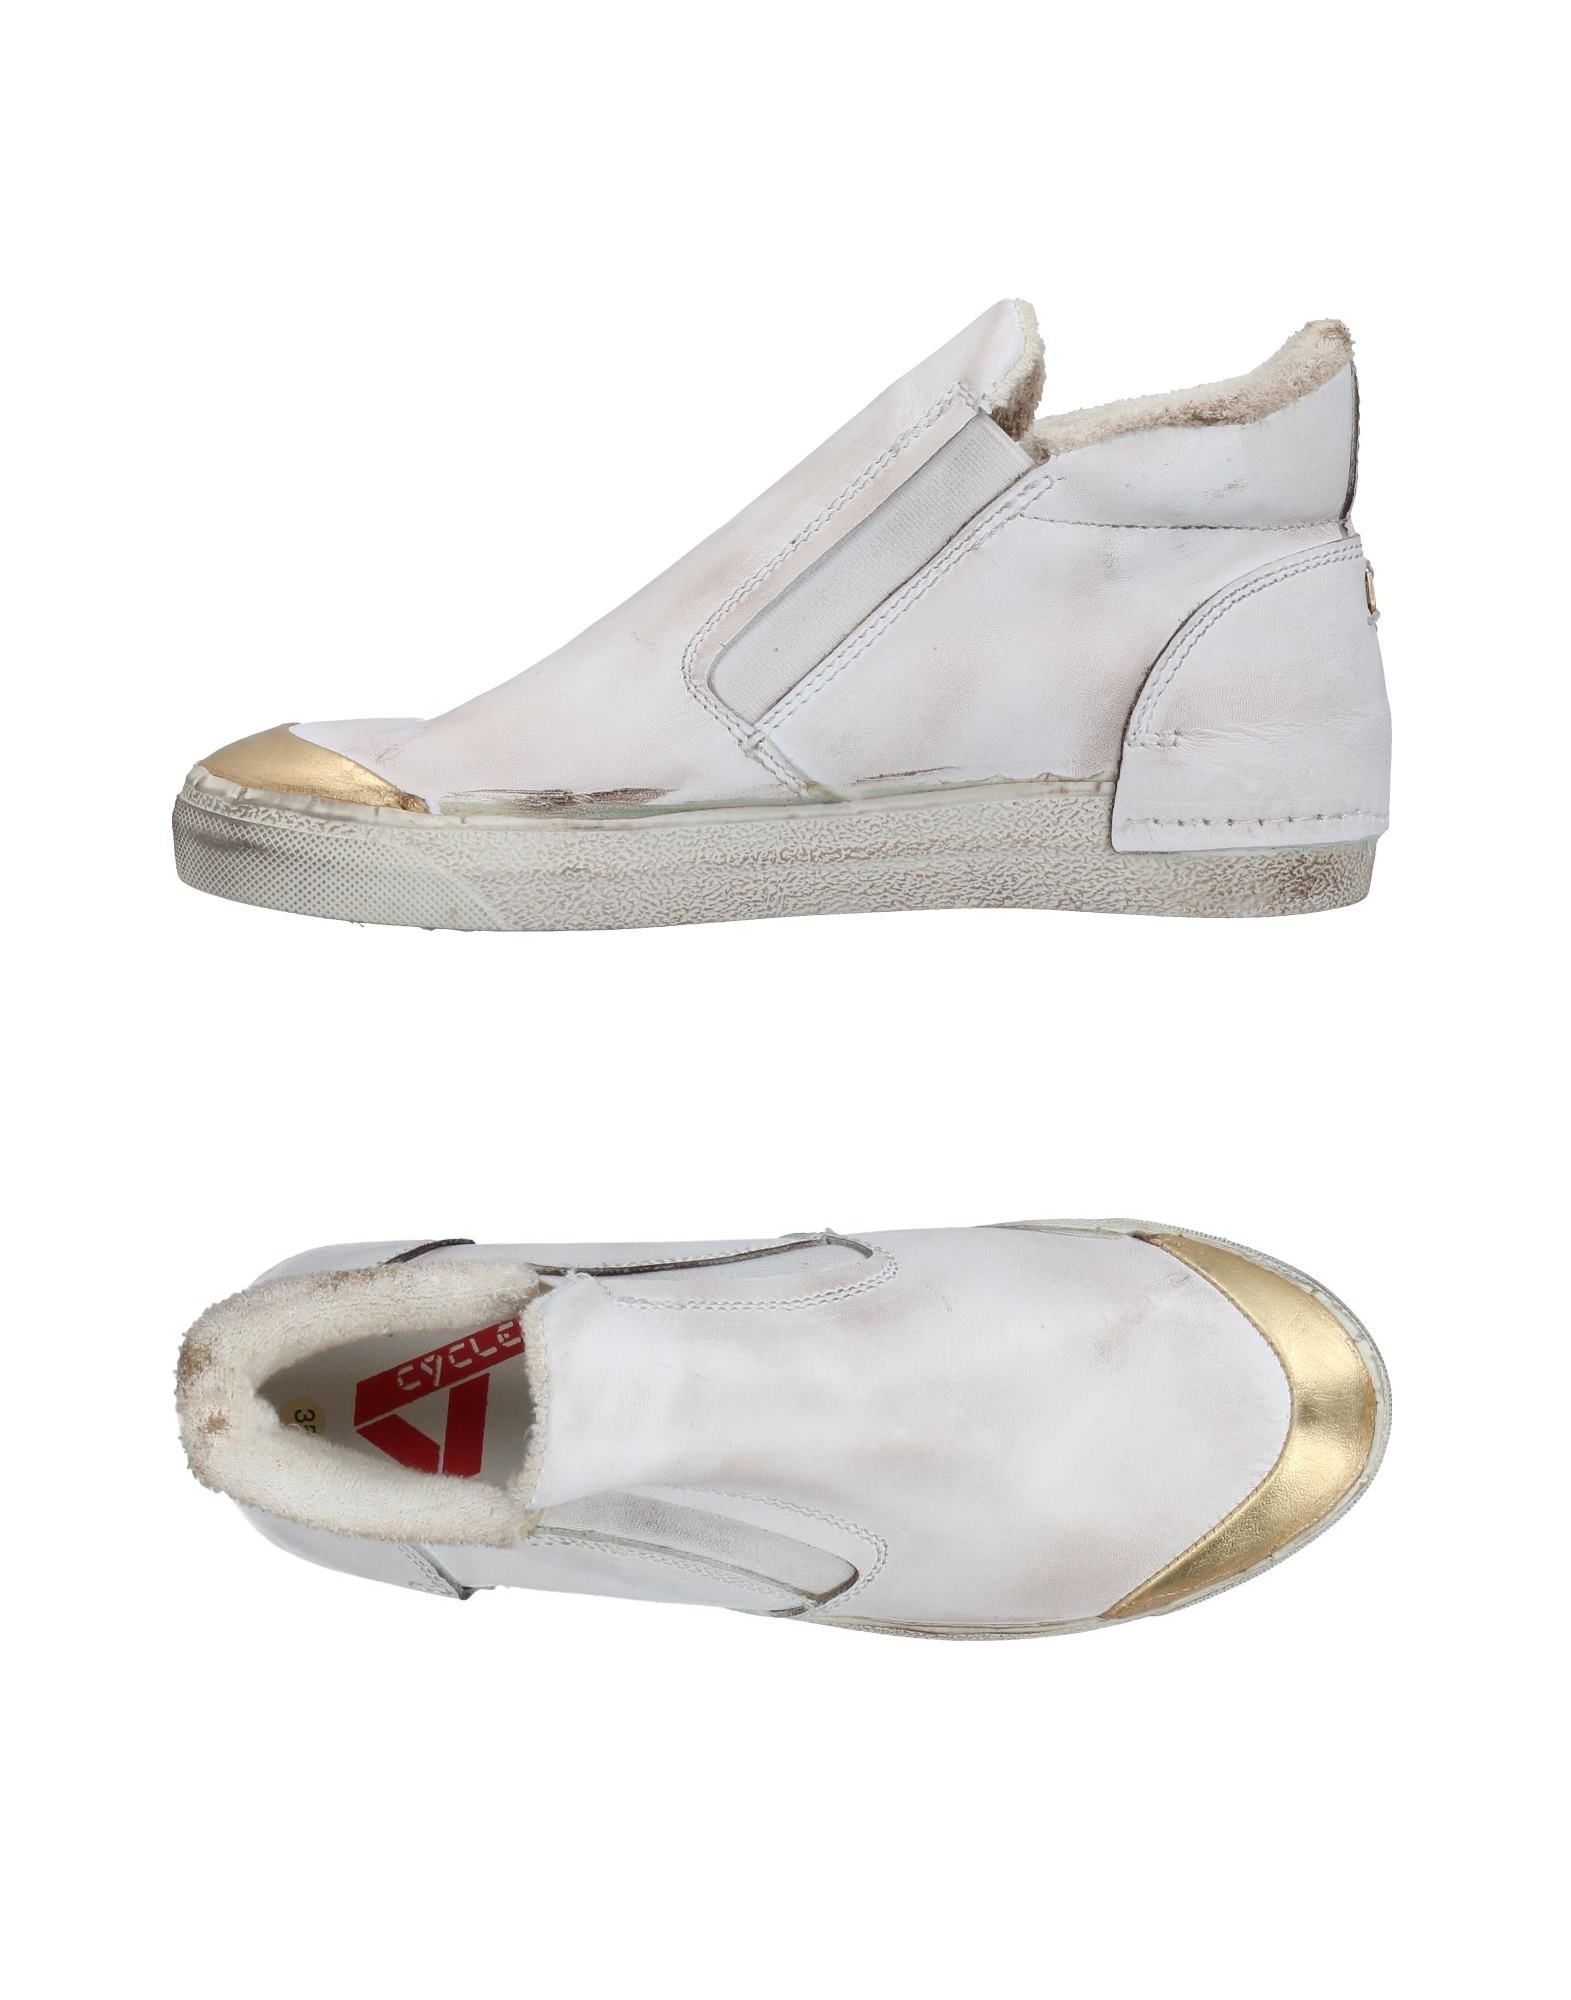 A buon mercato Sneakers Cycle Donna - 11412144NR